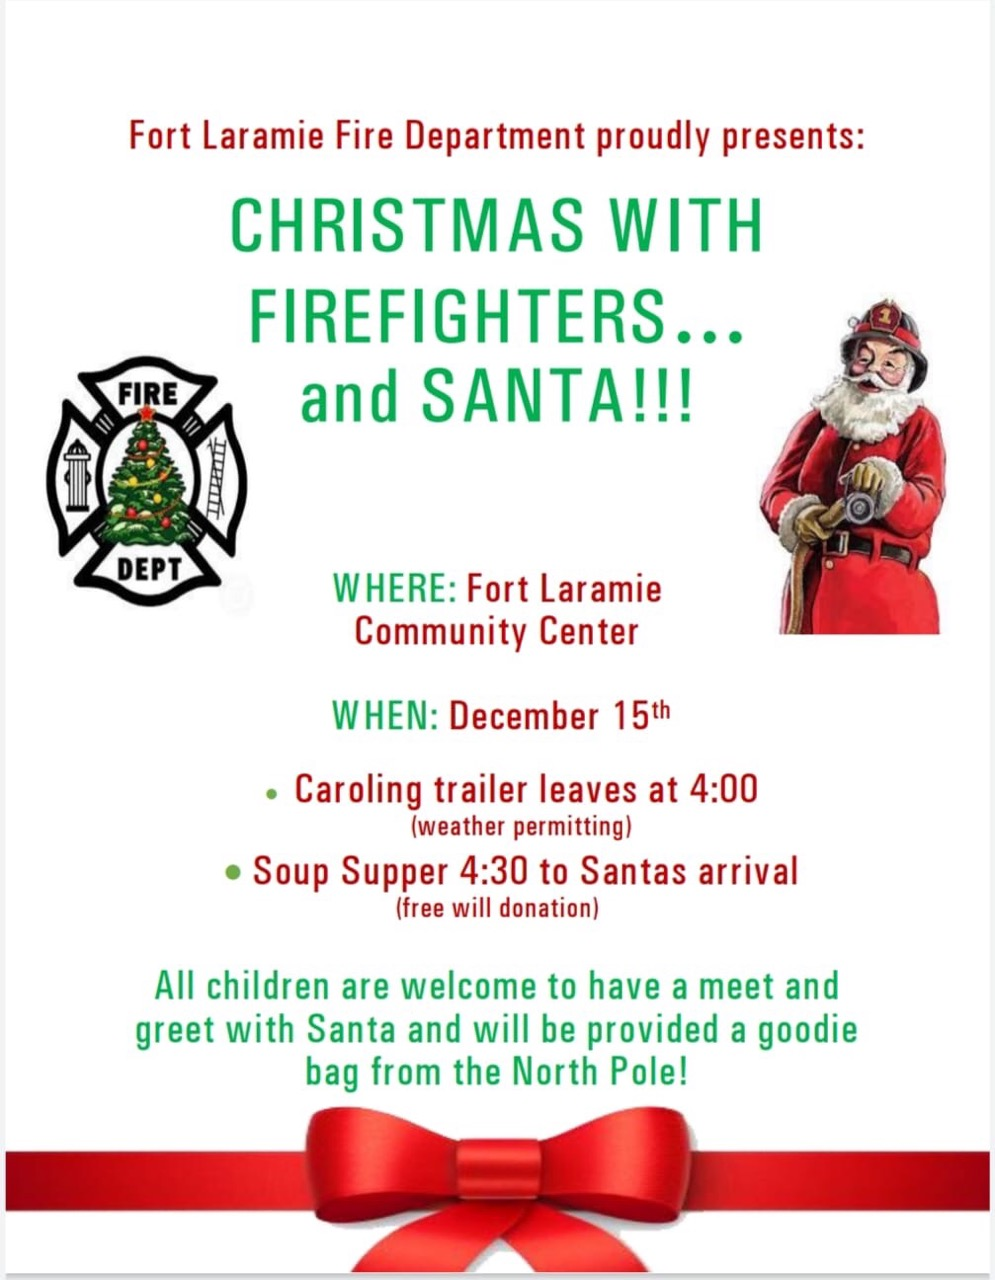 Christmas with Firefighters and Santa! Photo